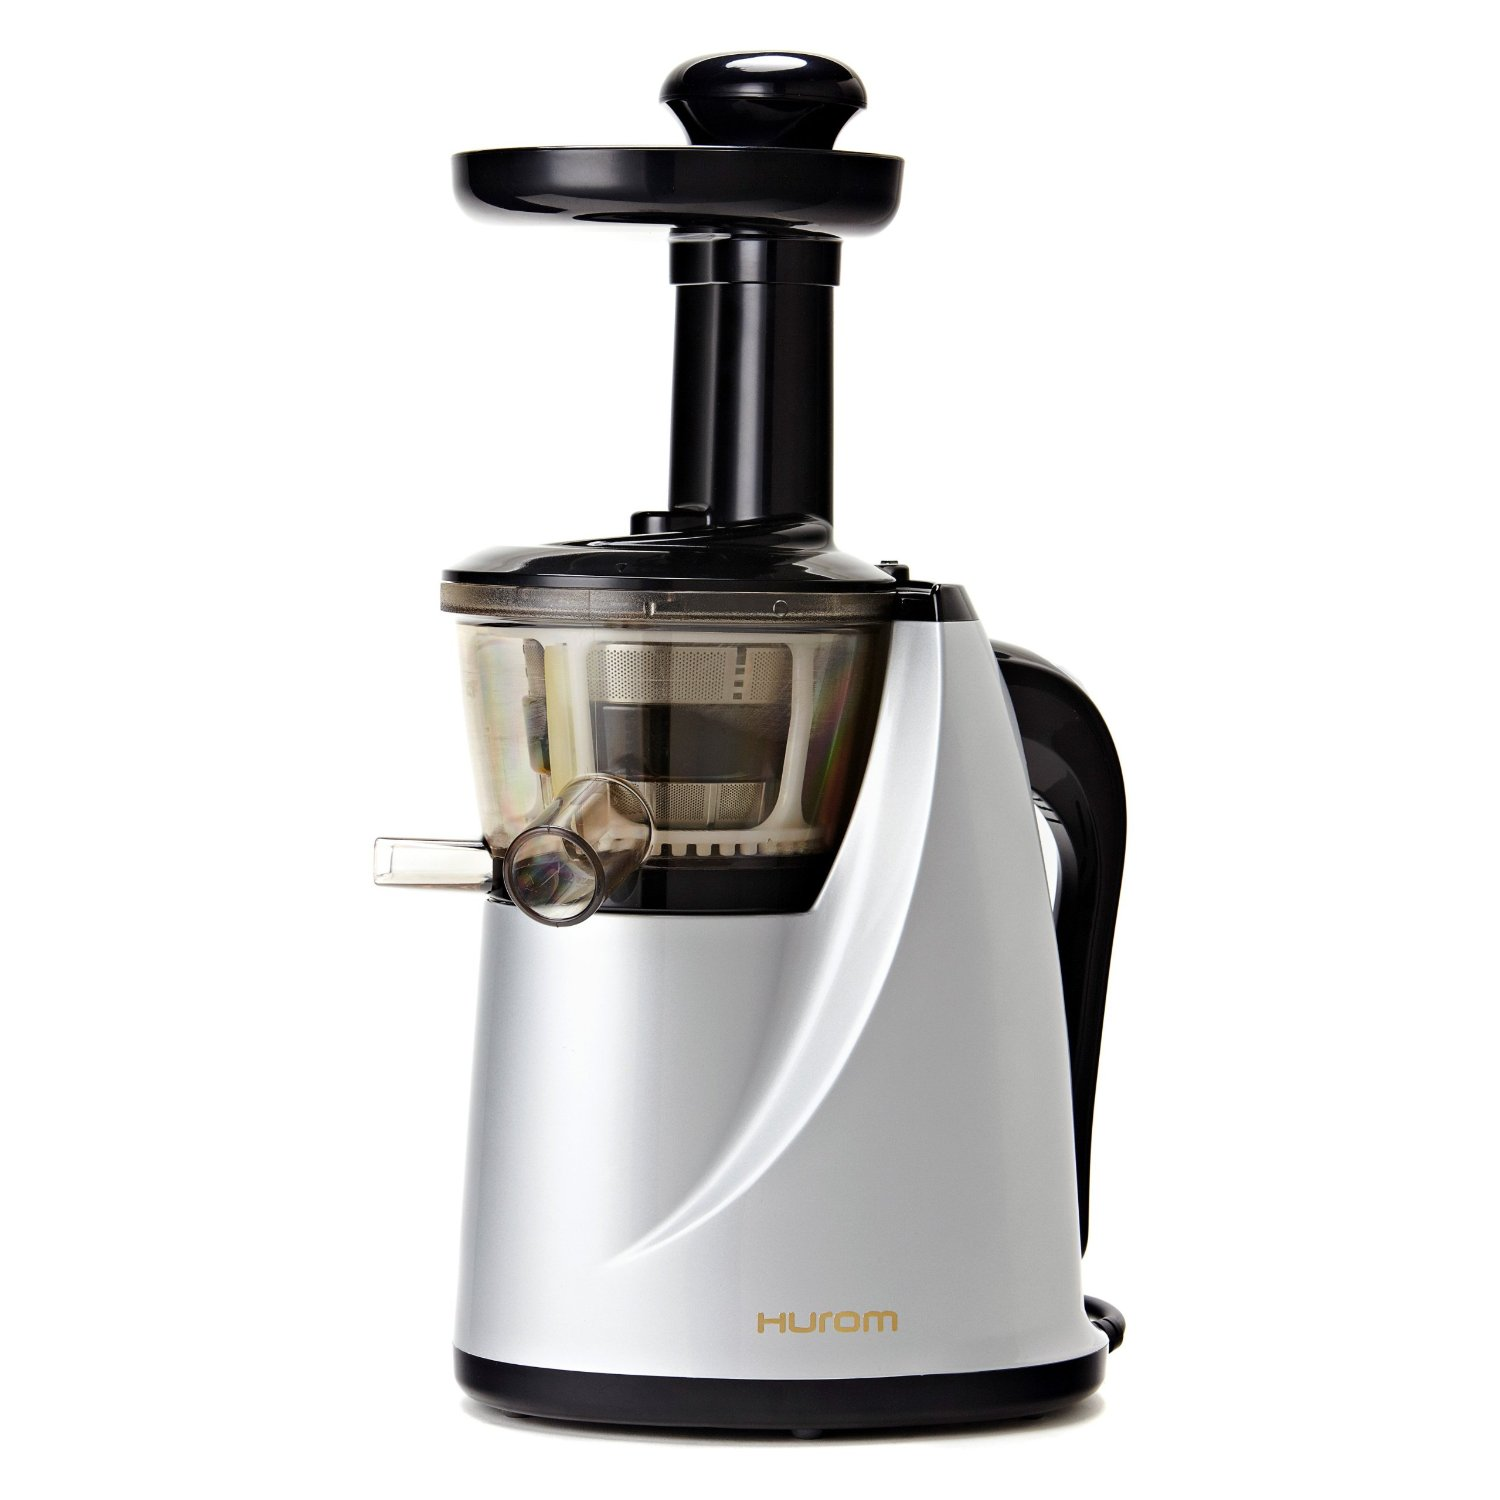 Hurom HU-100 Masticating Slow Juicer Review